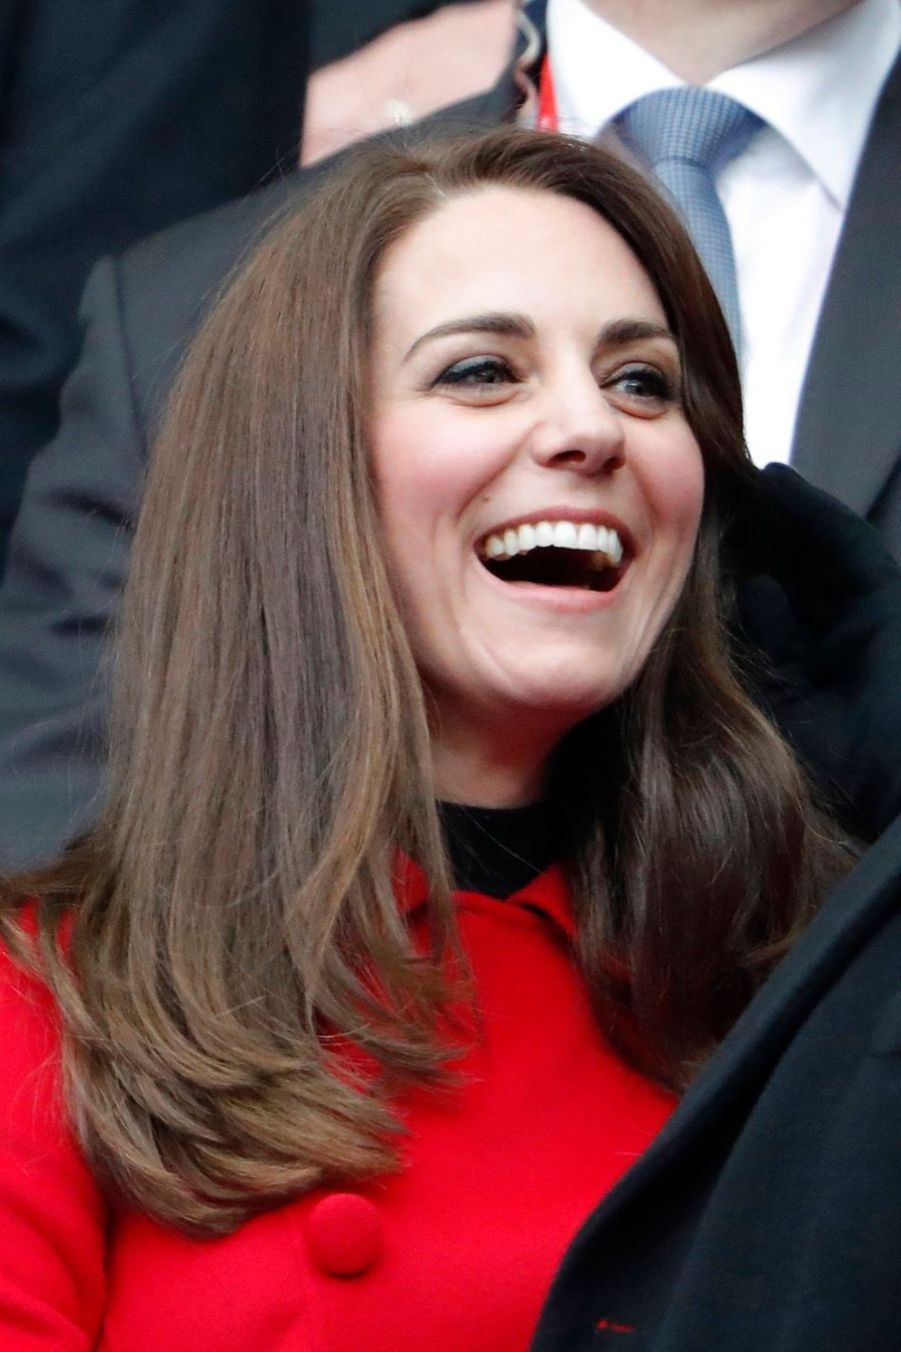 Kate Middleton Et Le Prince William Au Stade De France Pour Le Match De Rugby France Pays De Galles 26